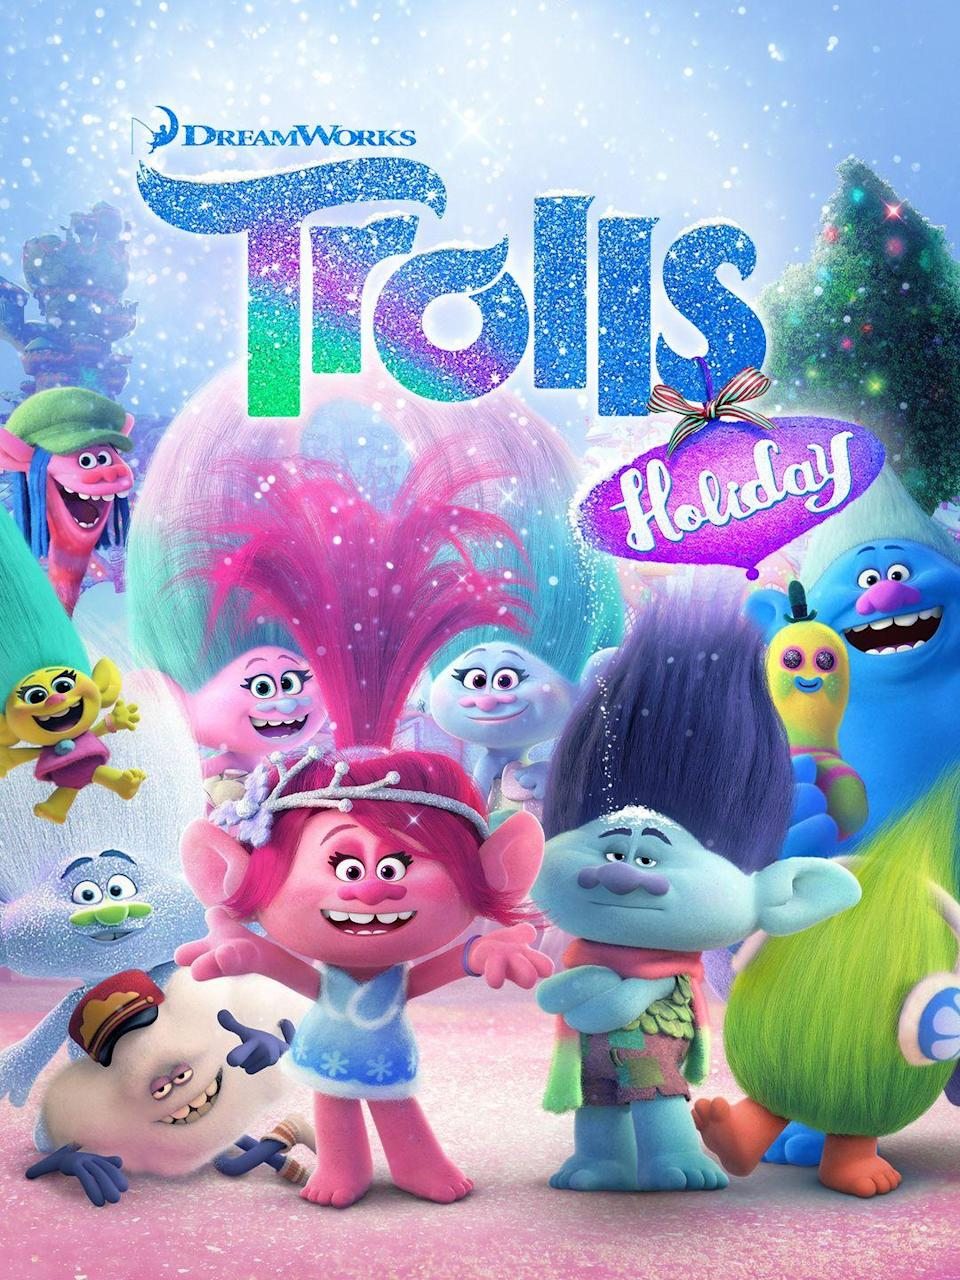 """<p>All your favorites are back in this animated spinoff that reminds you how fun it is to celebrate the holiday season. </p><p><a class=""""link rapid-noclick-resp"""" href=""""https://www.netflix.com/title/80185876"""" rel=""""nofollow noopener"""" target=""""_blank"""" data-ylk=""""slk:STREAM NOW"""">STREAM NOW</a></p>"""